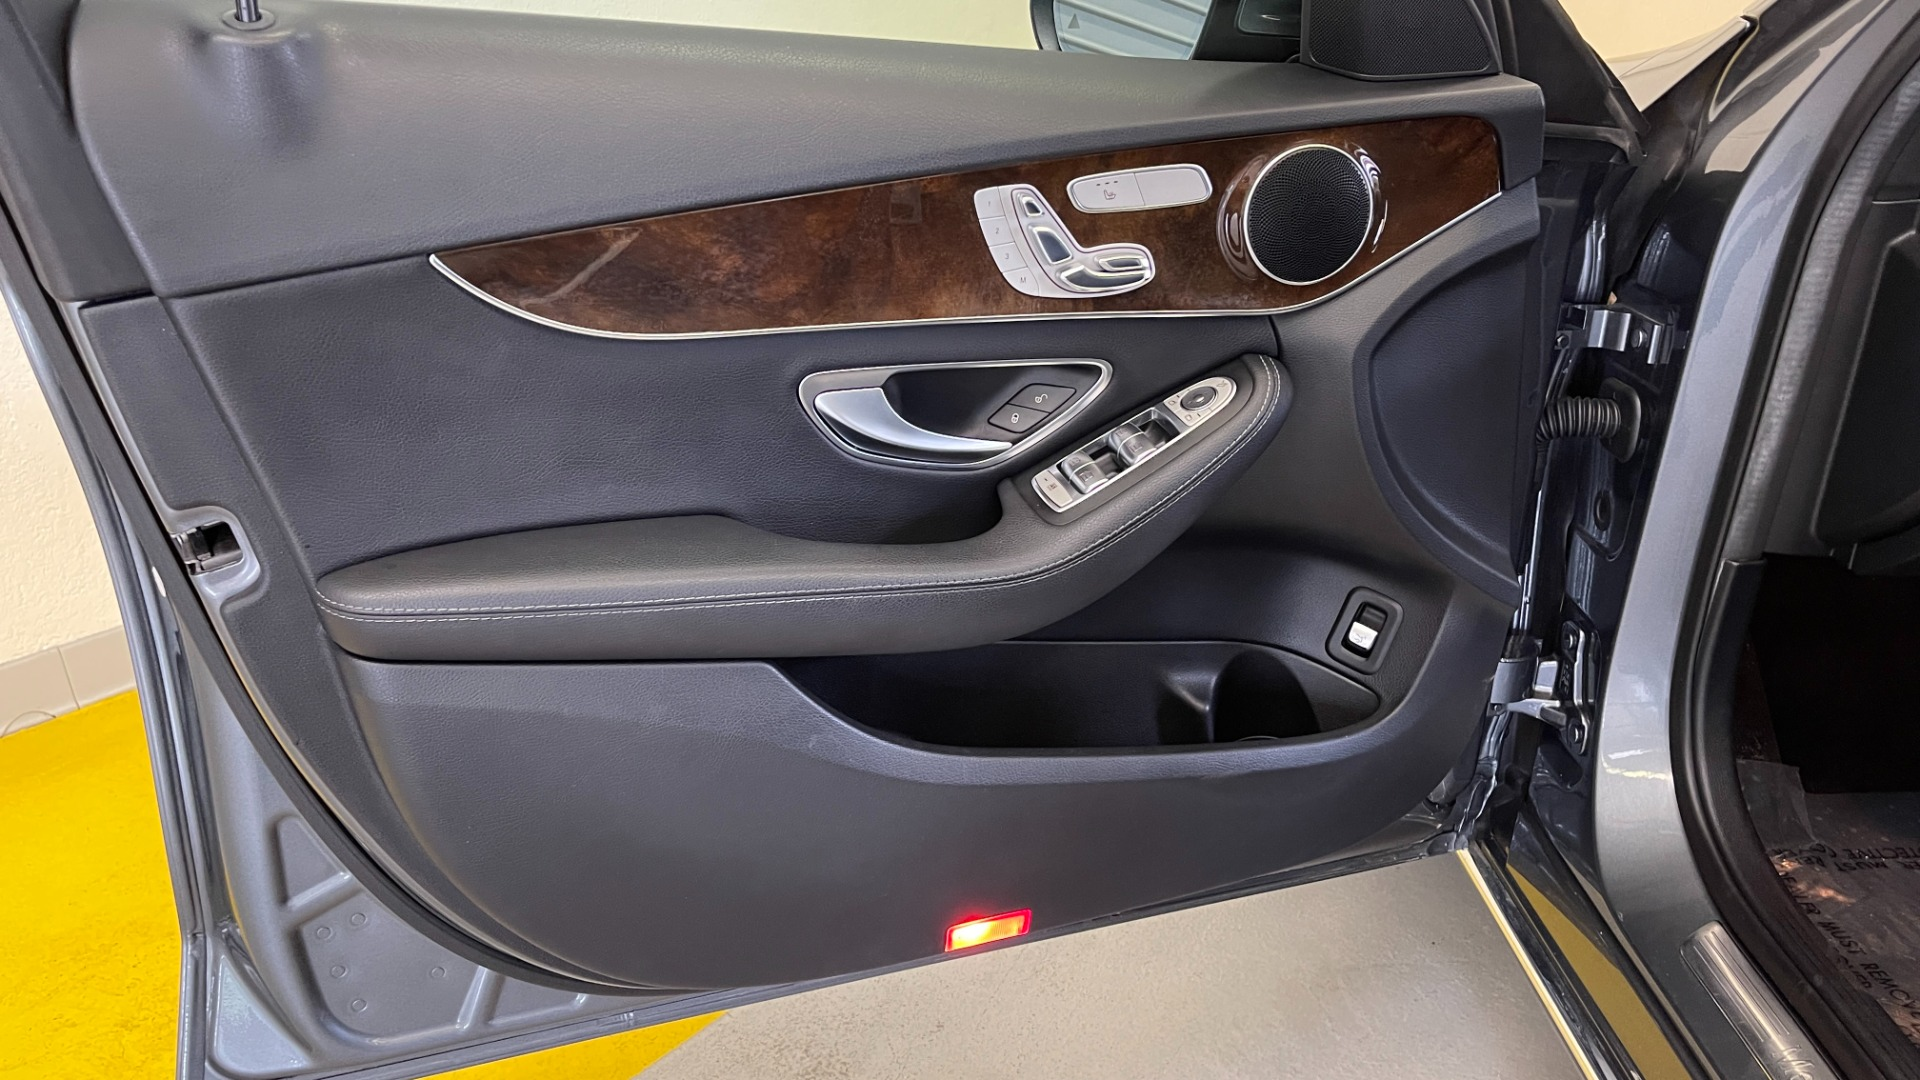 Used 2018 Mercedes-Benz C-CLASS C 300 PREMIUM / SUNROOF / APPLE CARPLAY / HTD STS / REARVIEW for sale $31,795 at Formula Imports in Charlotte NC 28227 23